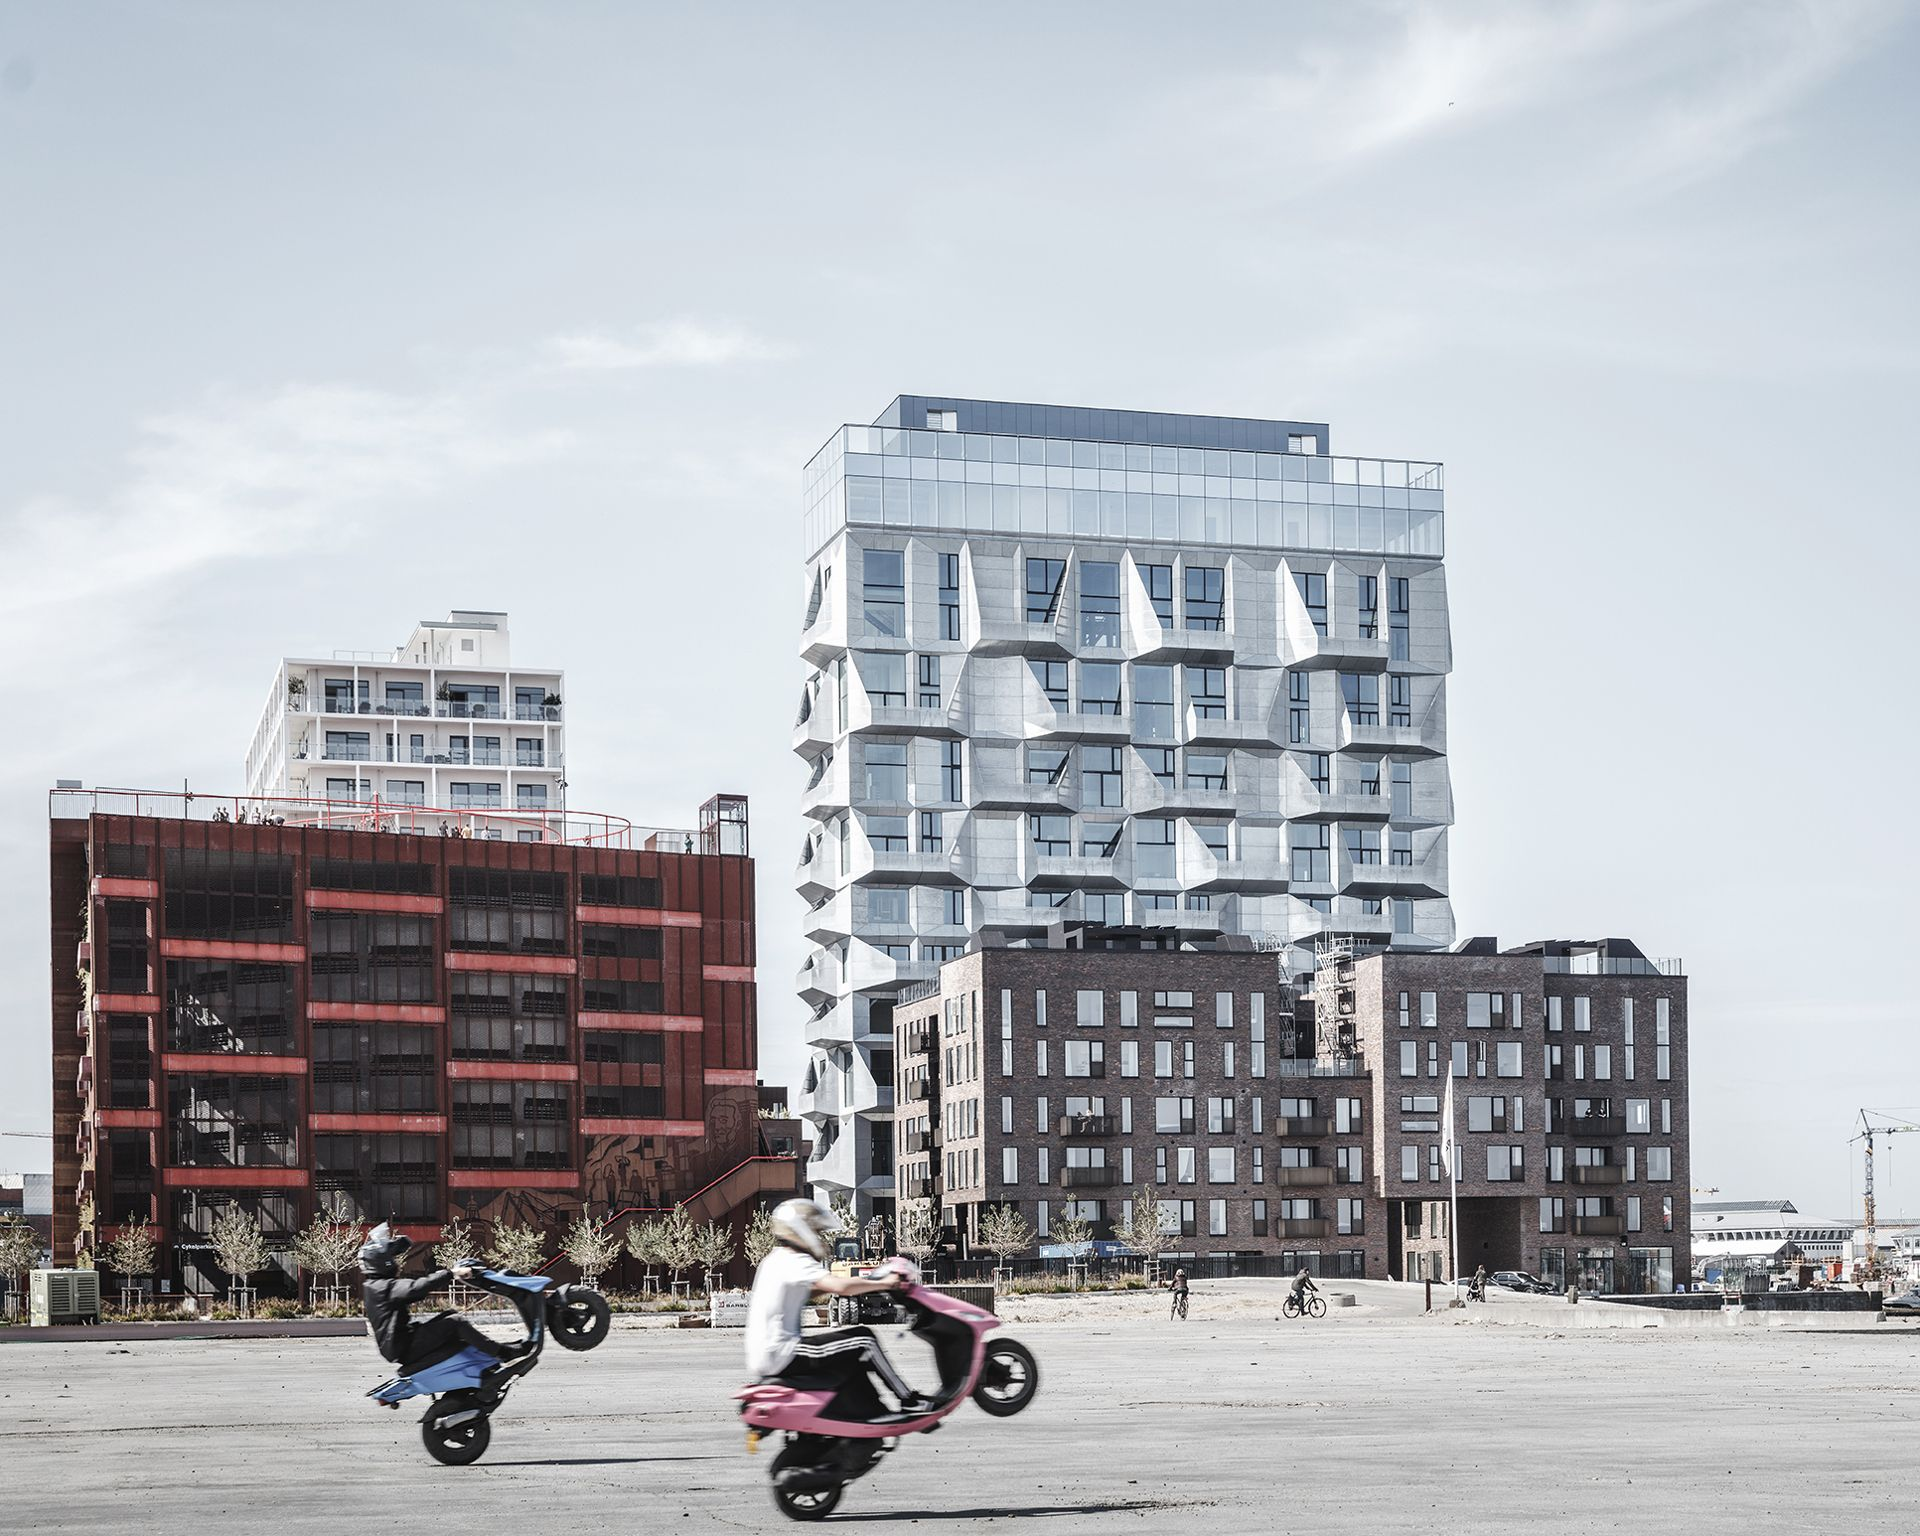 Apartments in a grain silo with a galvanised steel façade, by Cobe architects